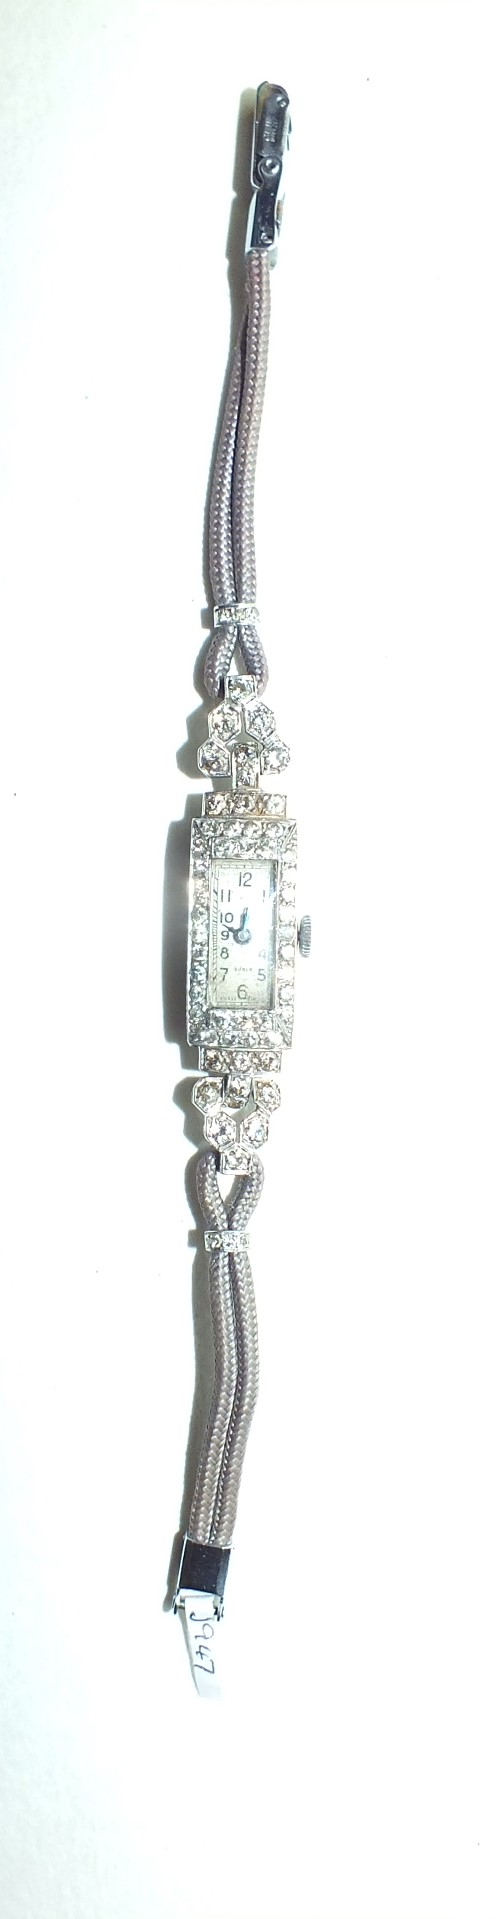 Lot 231 - Buren, a ladies Art Deco cocktail watch, the rectangular platinum case pavé-set with brilliant-cut